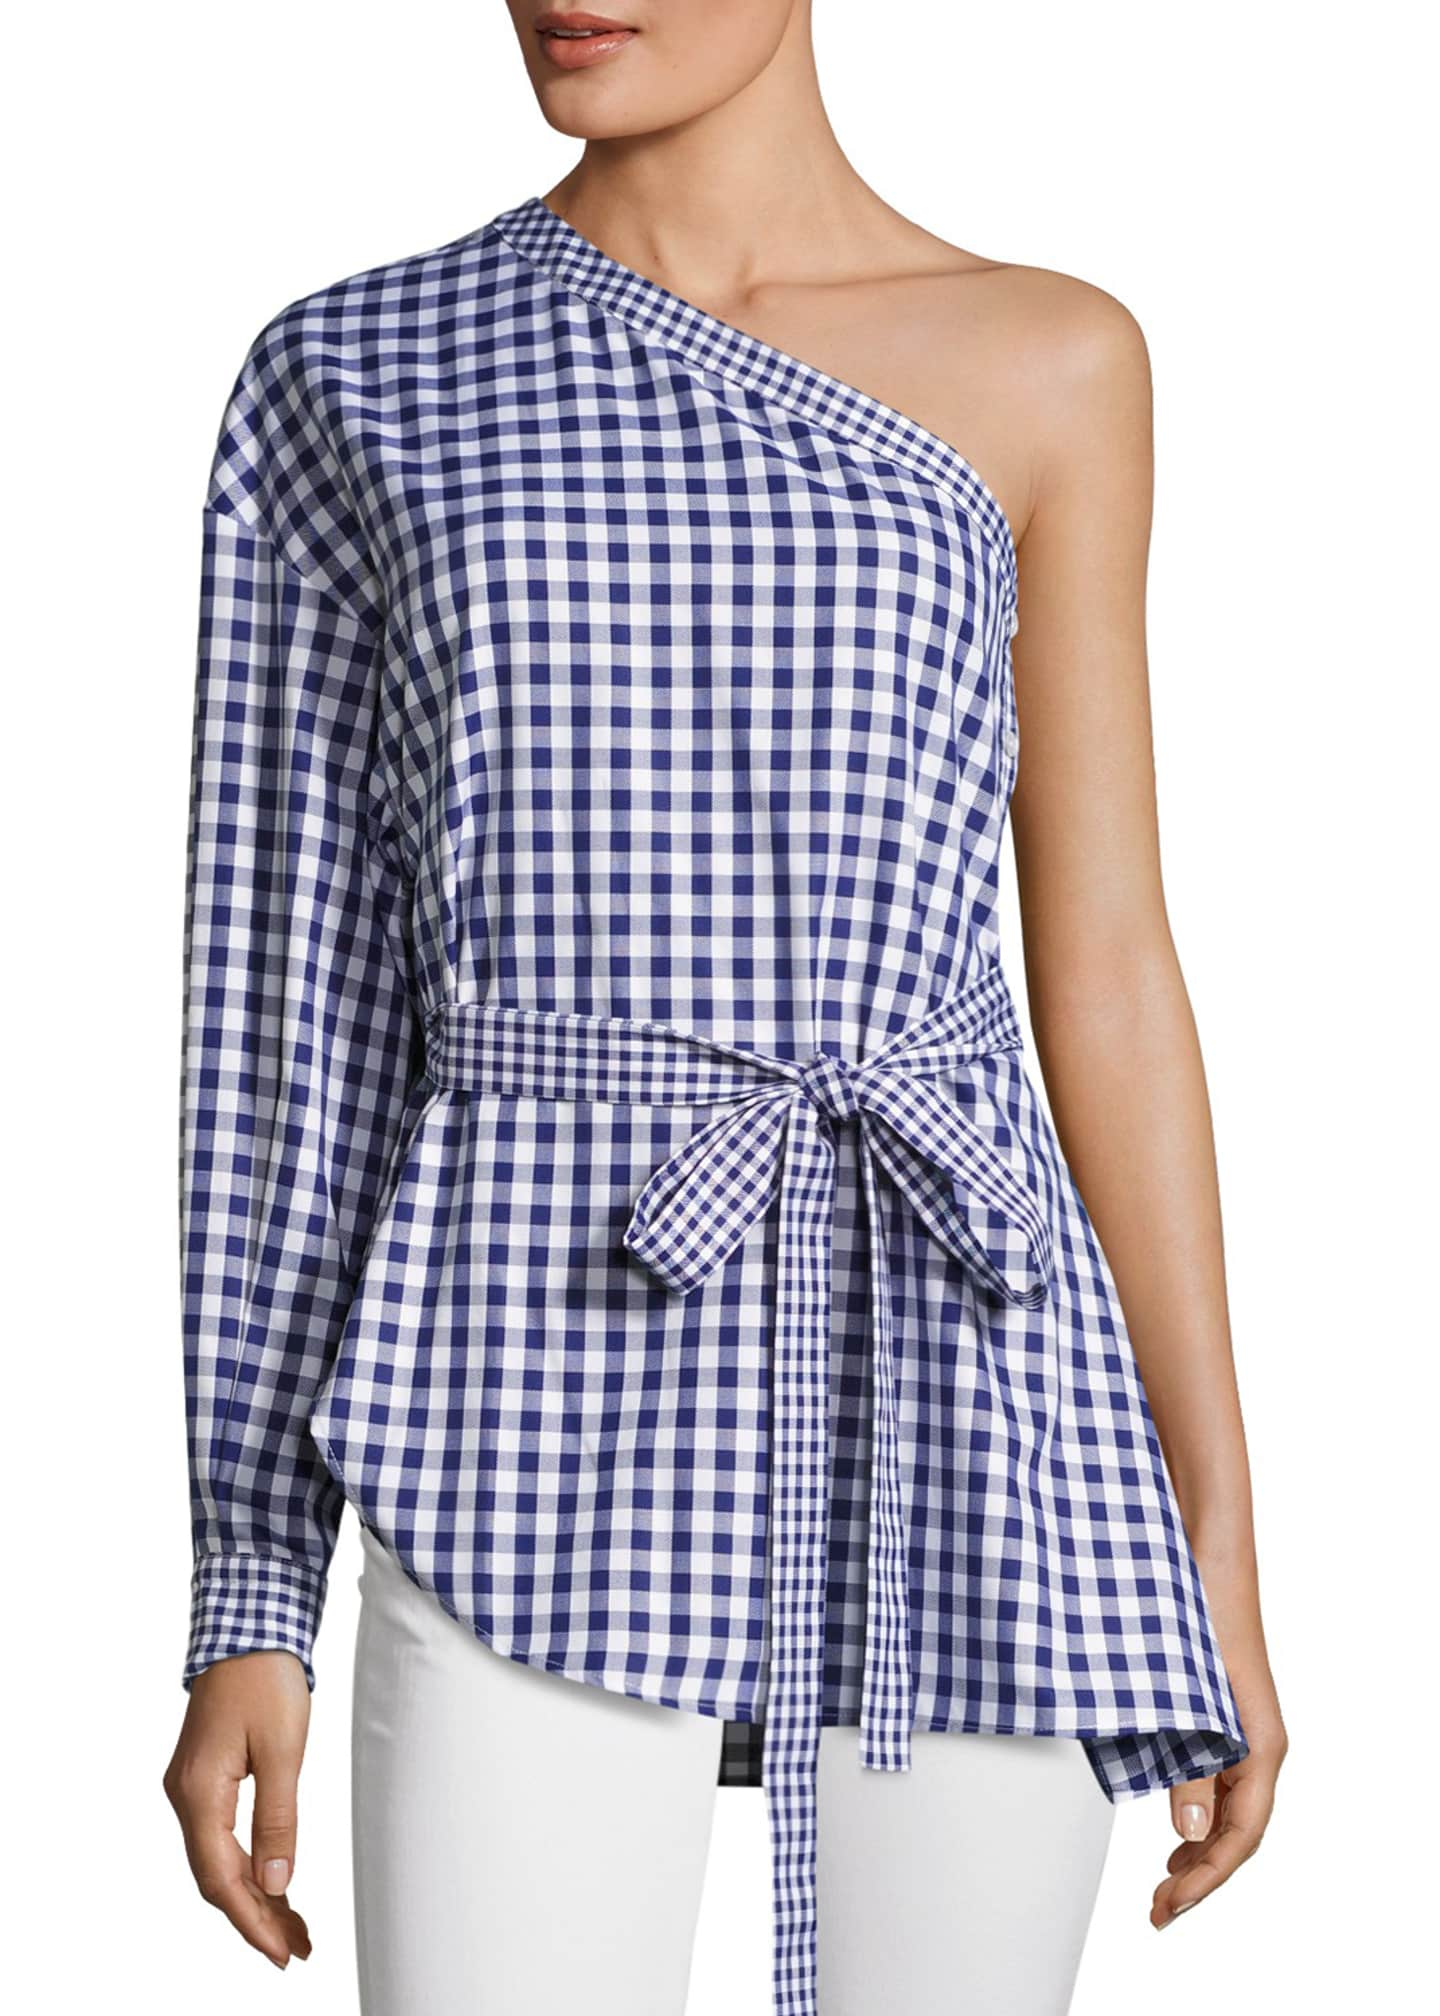 Rosetta Getty Gingham One-Shoulder Cotton Blouse, Blue/White